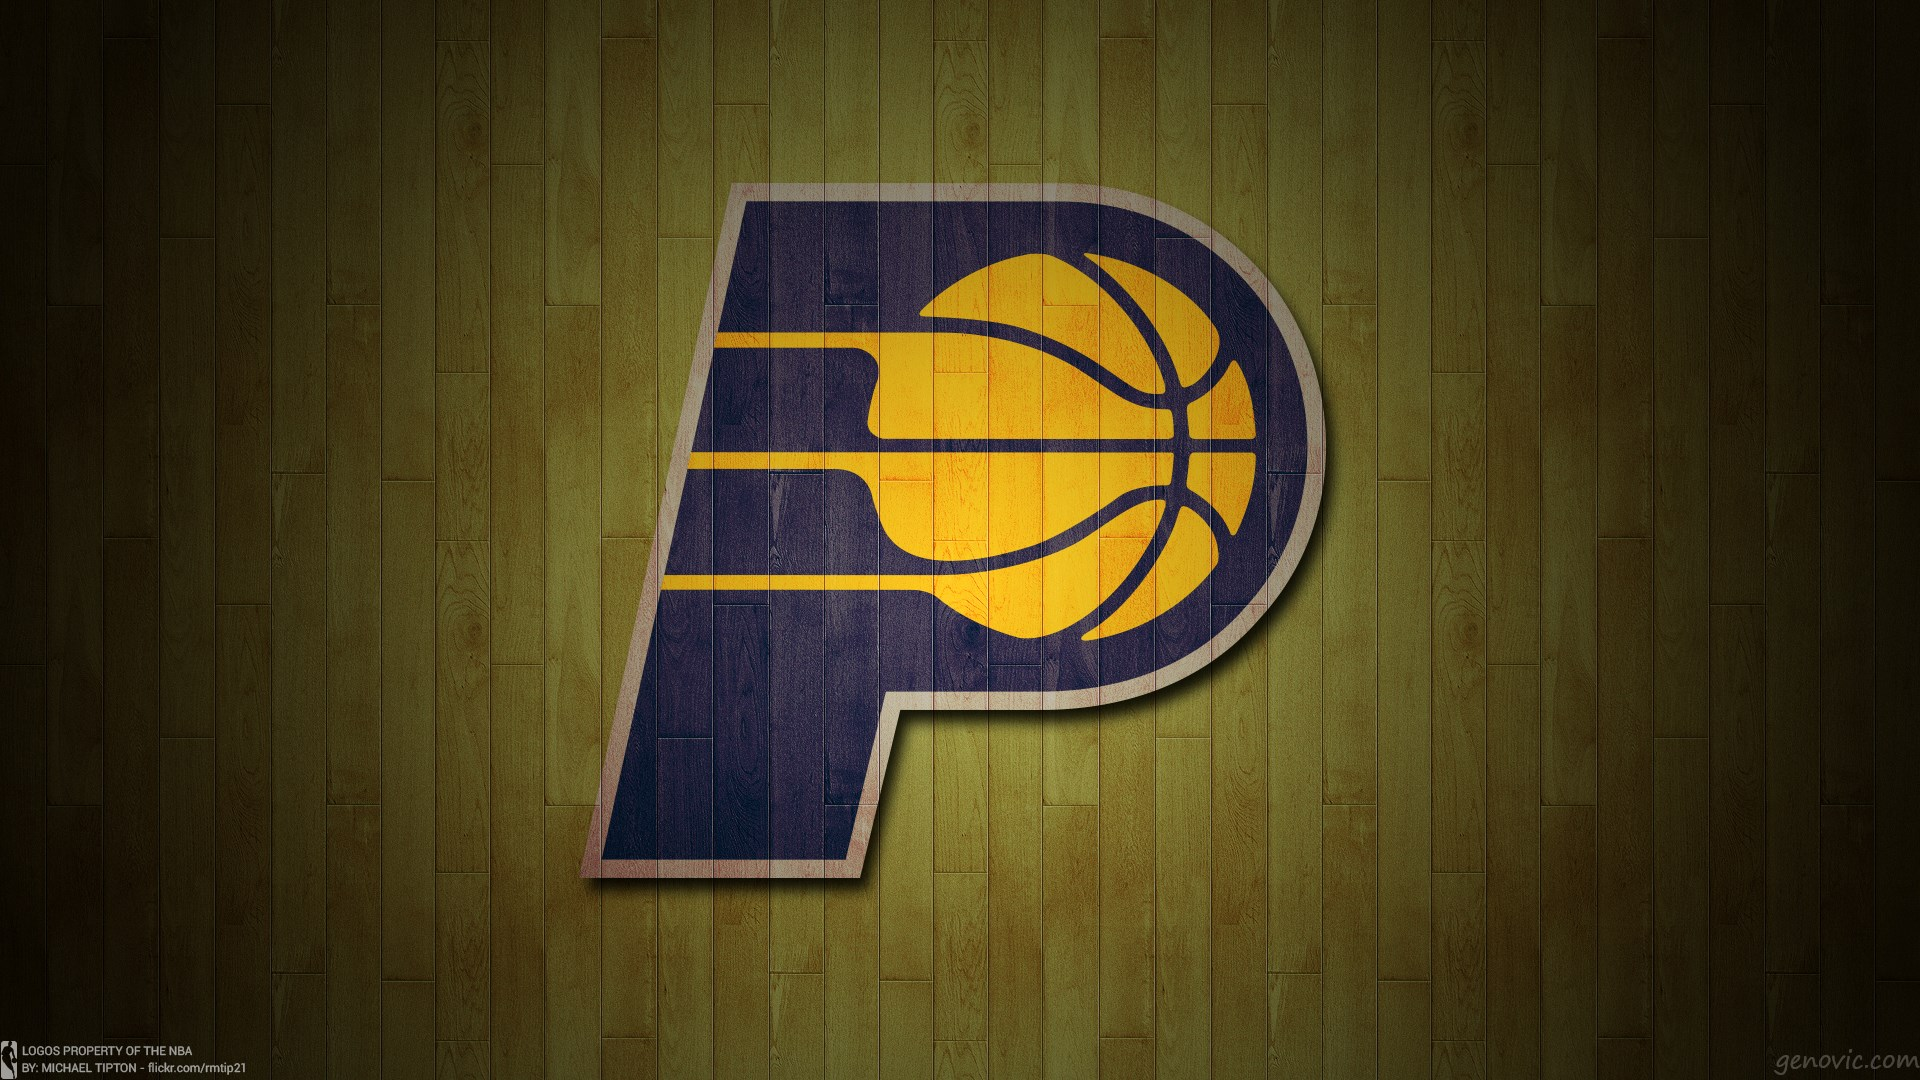 Indiana Pacers Basketball Team Logo Wallpapers HD 1920x1080